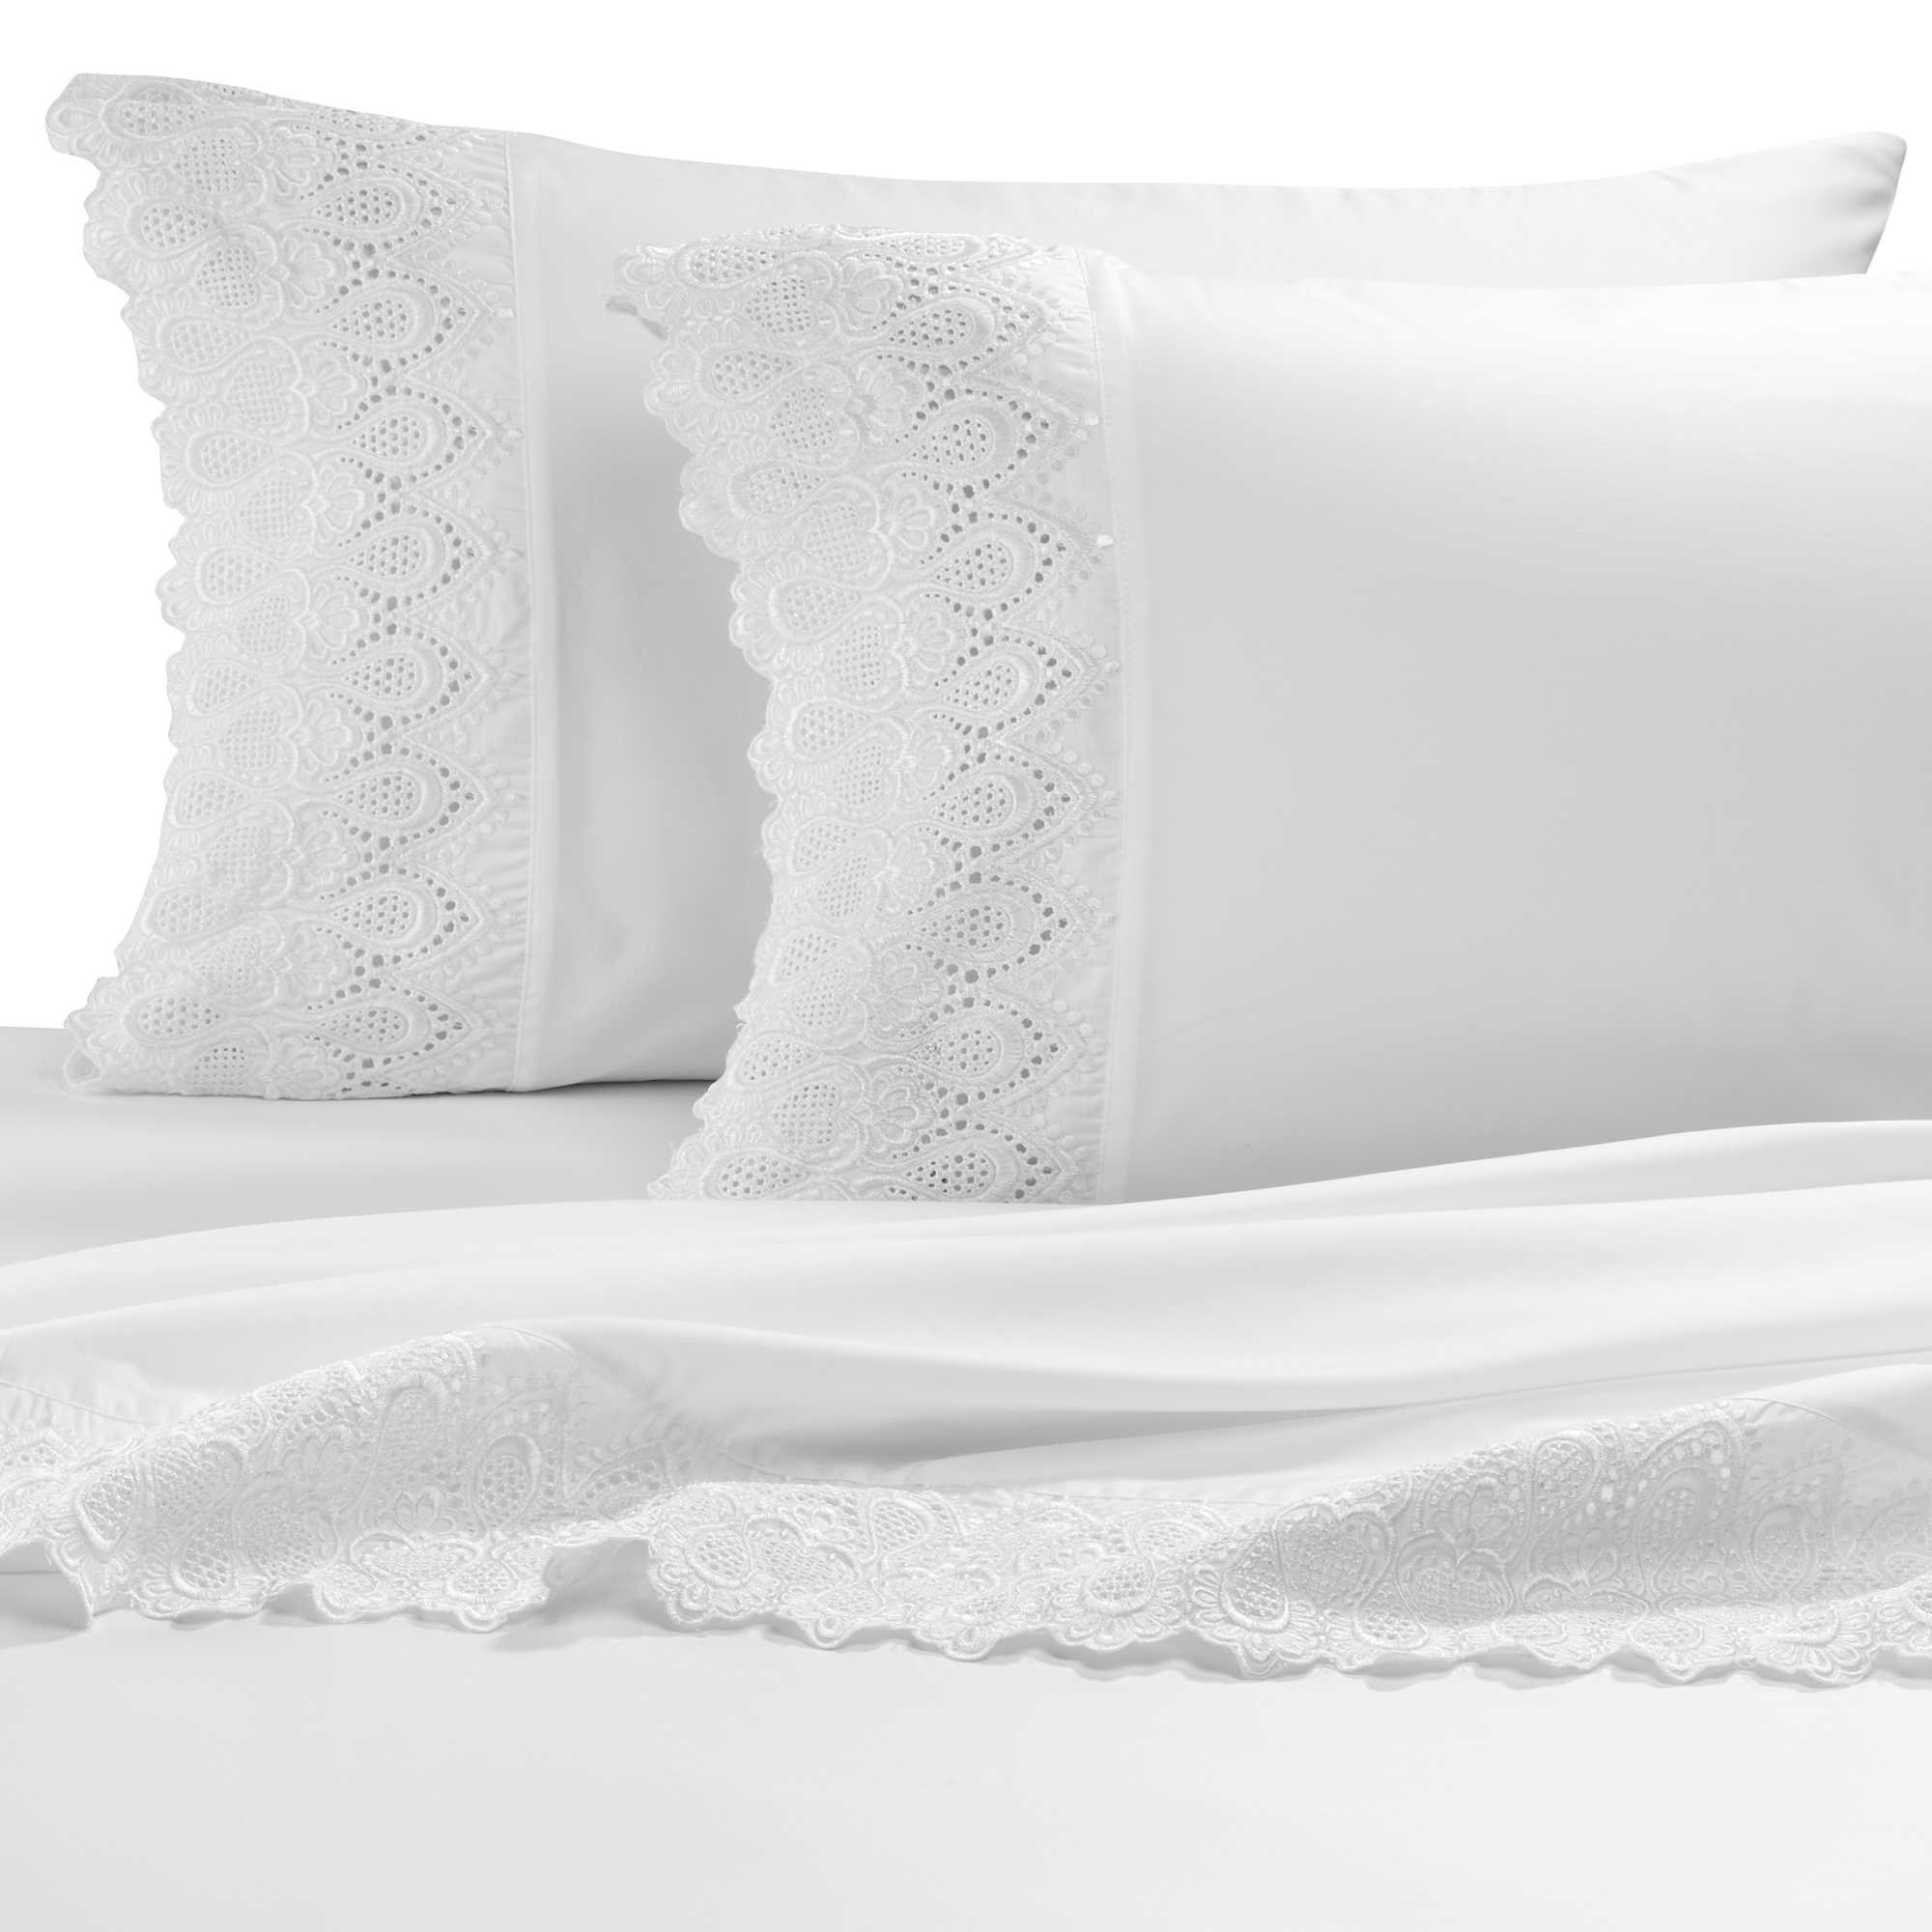 AURAA Smart 600 Thread Count Cotton Rich, 4 Piece Sheet Set, Queen Sheets, 16'' Deep Pocket, LACE Hem, Smooth & Soft Sateen Weave, Hotel Quality, White by AURAA (Image #1)